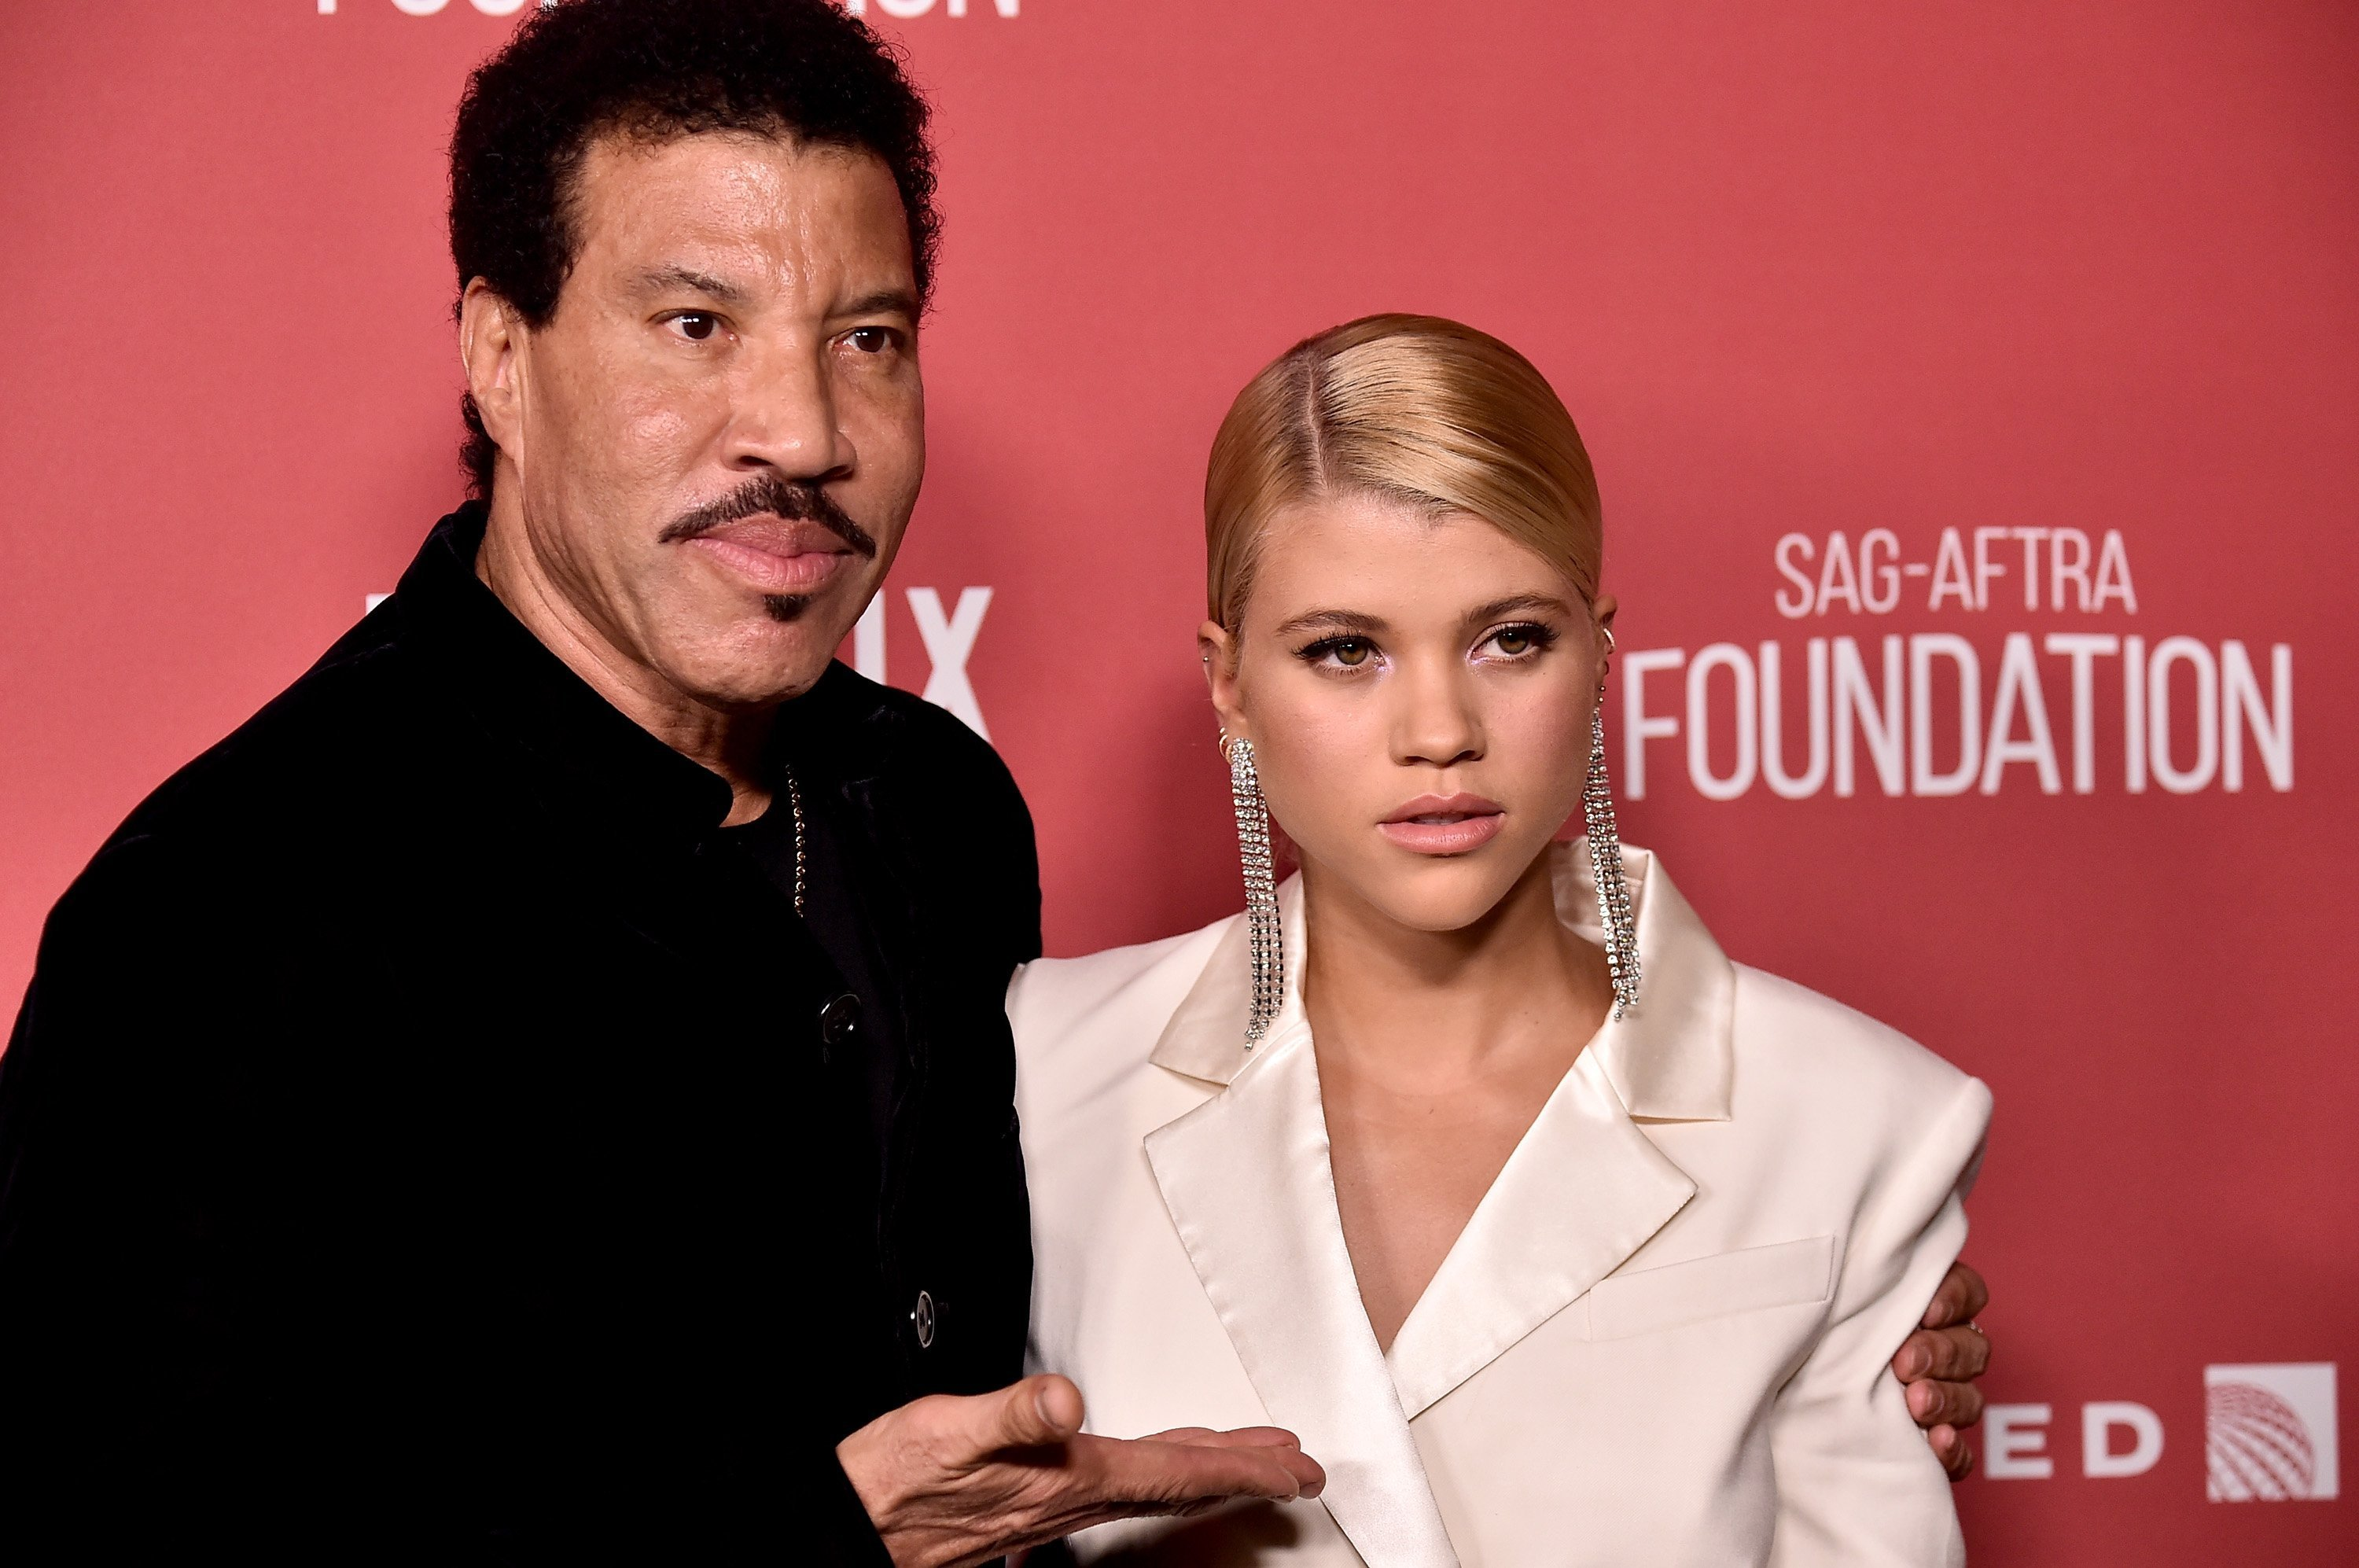 Lionel Richie and Sofia Richie attend the SAG-AFTRA Foundation Patron of the Artists Awards 2017 at the Wallis Annenberg Center for the Performing Arts on November 9, 2017 in Beverly Hills, California. | Photo: GettyImages/Global Images of Ukraine